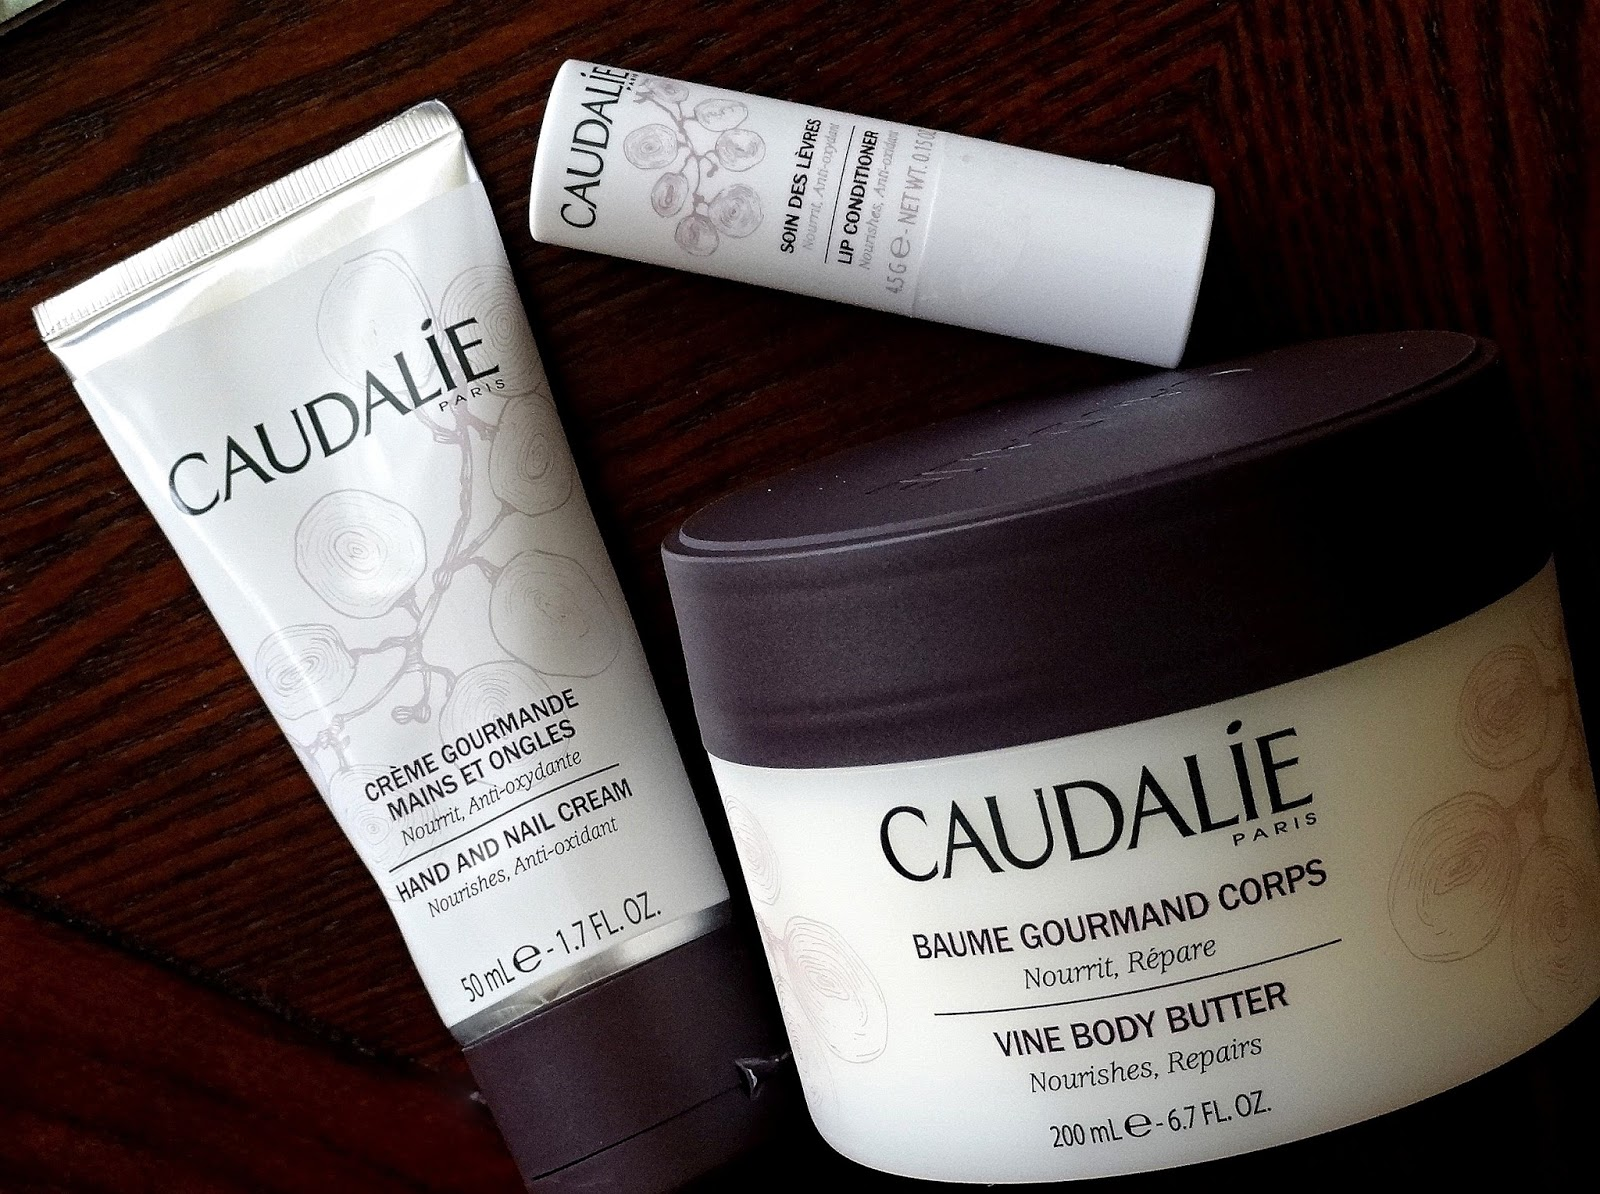 Caudalie Vine Luxury Body Set Review, Photos